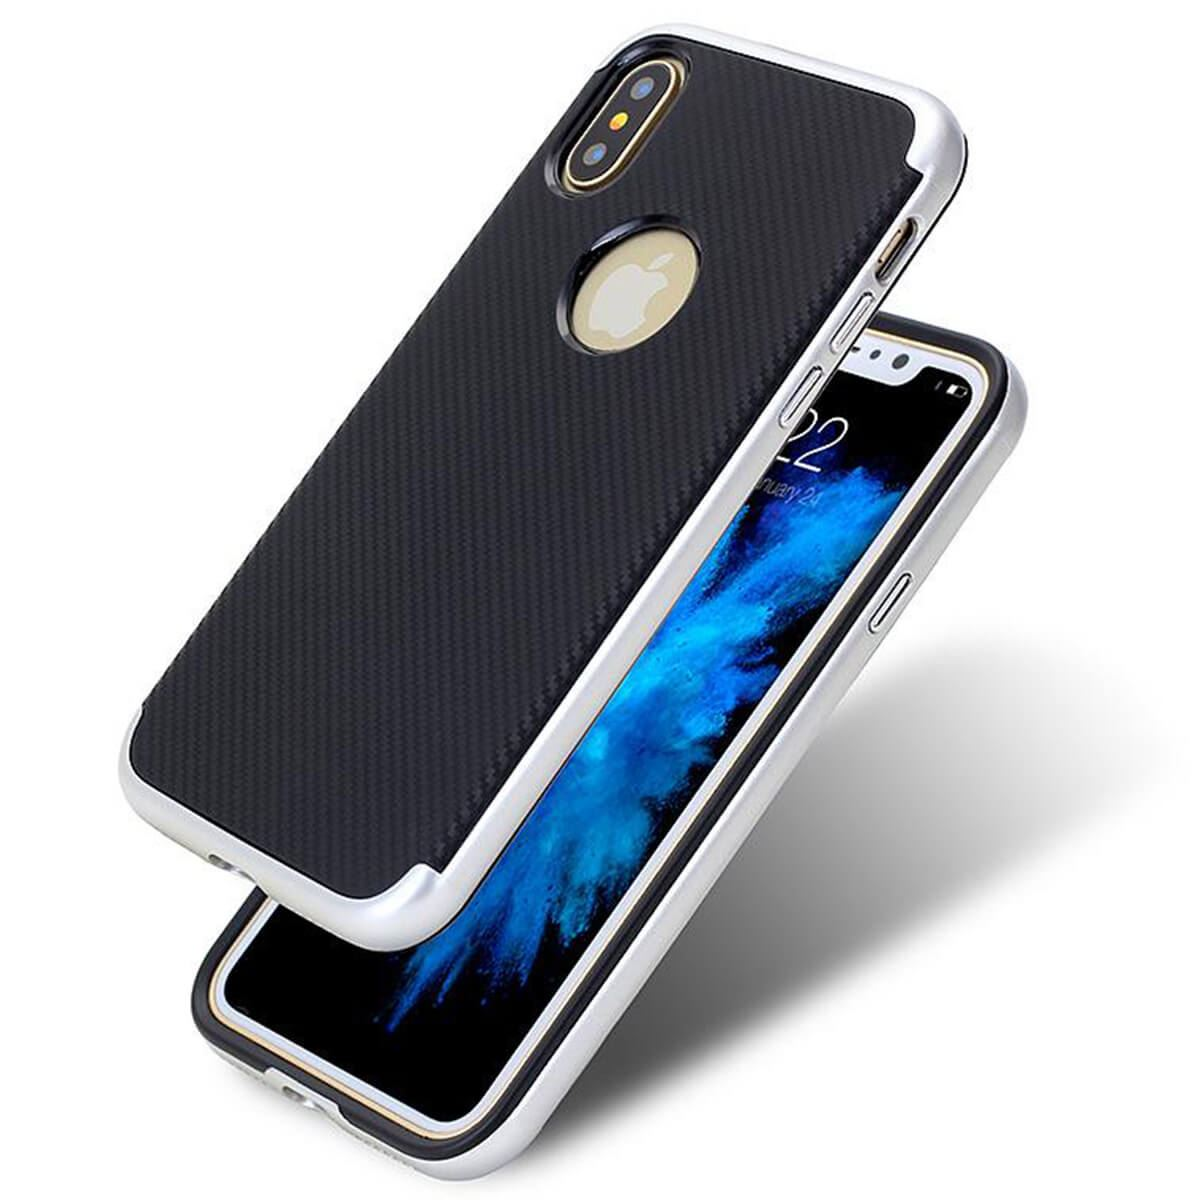 Case-For-Apple-iPhone-10-X-8-7-6s-5s-Luxury-Carbon-Fibre-Bumper-Hard-Back-Cover thumbnail 13